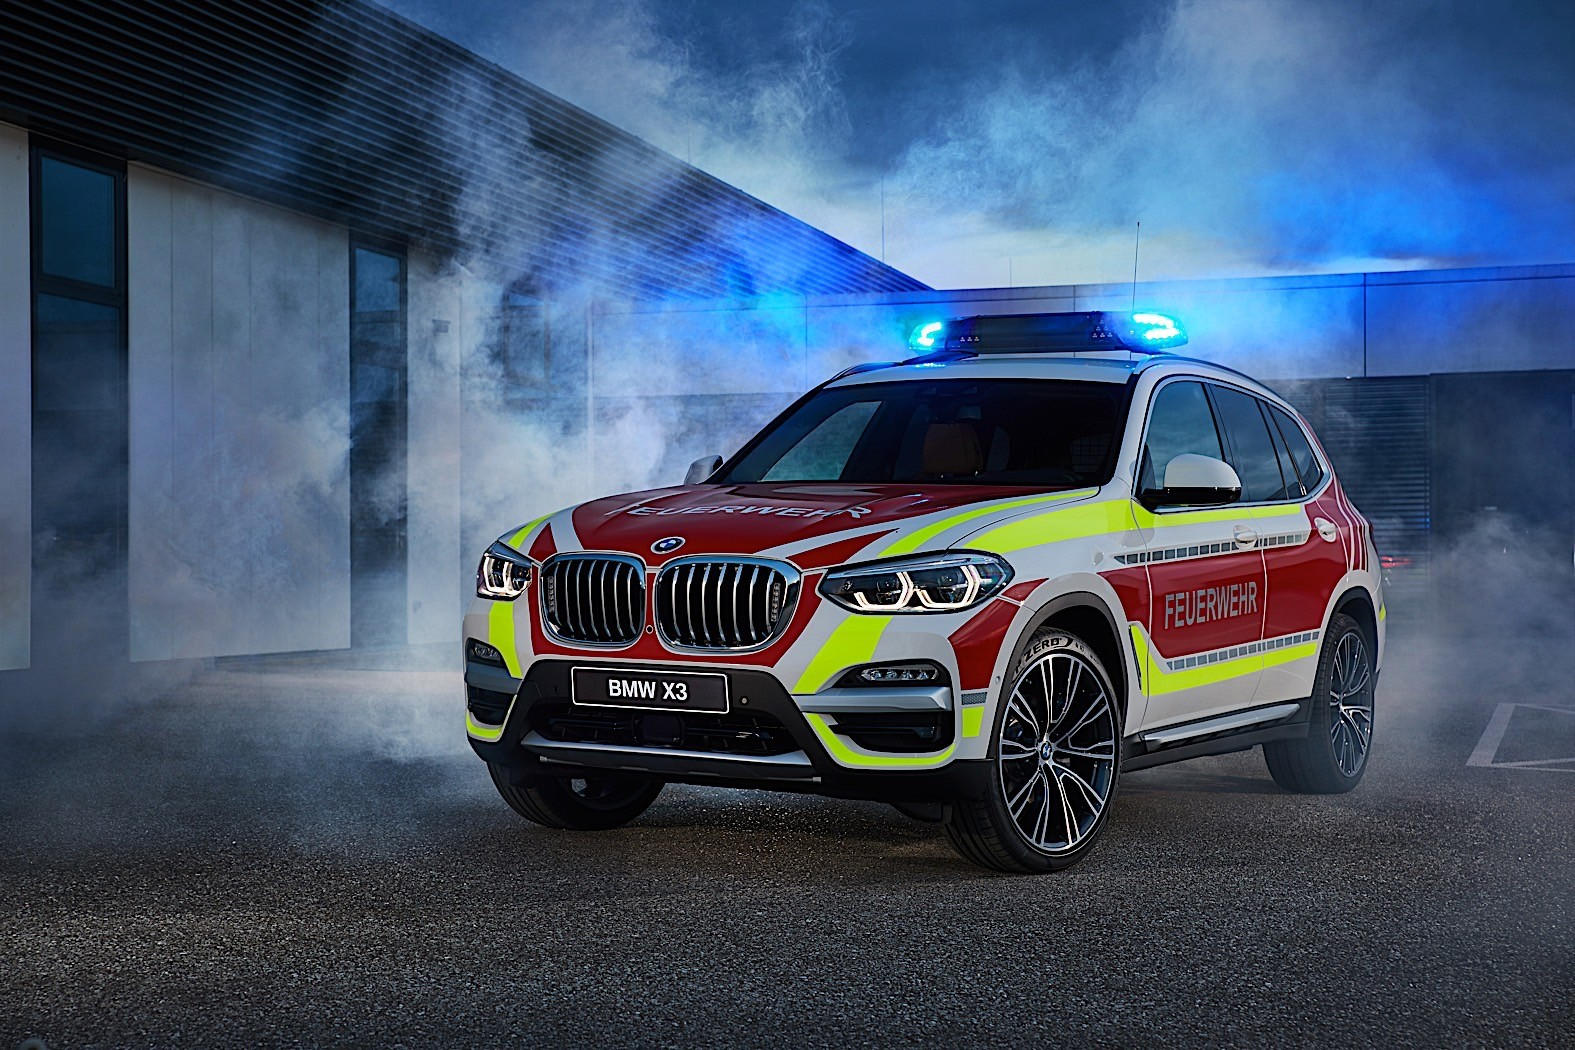 hight resolution of bmw x3 xdrive20d fire service command